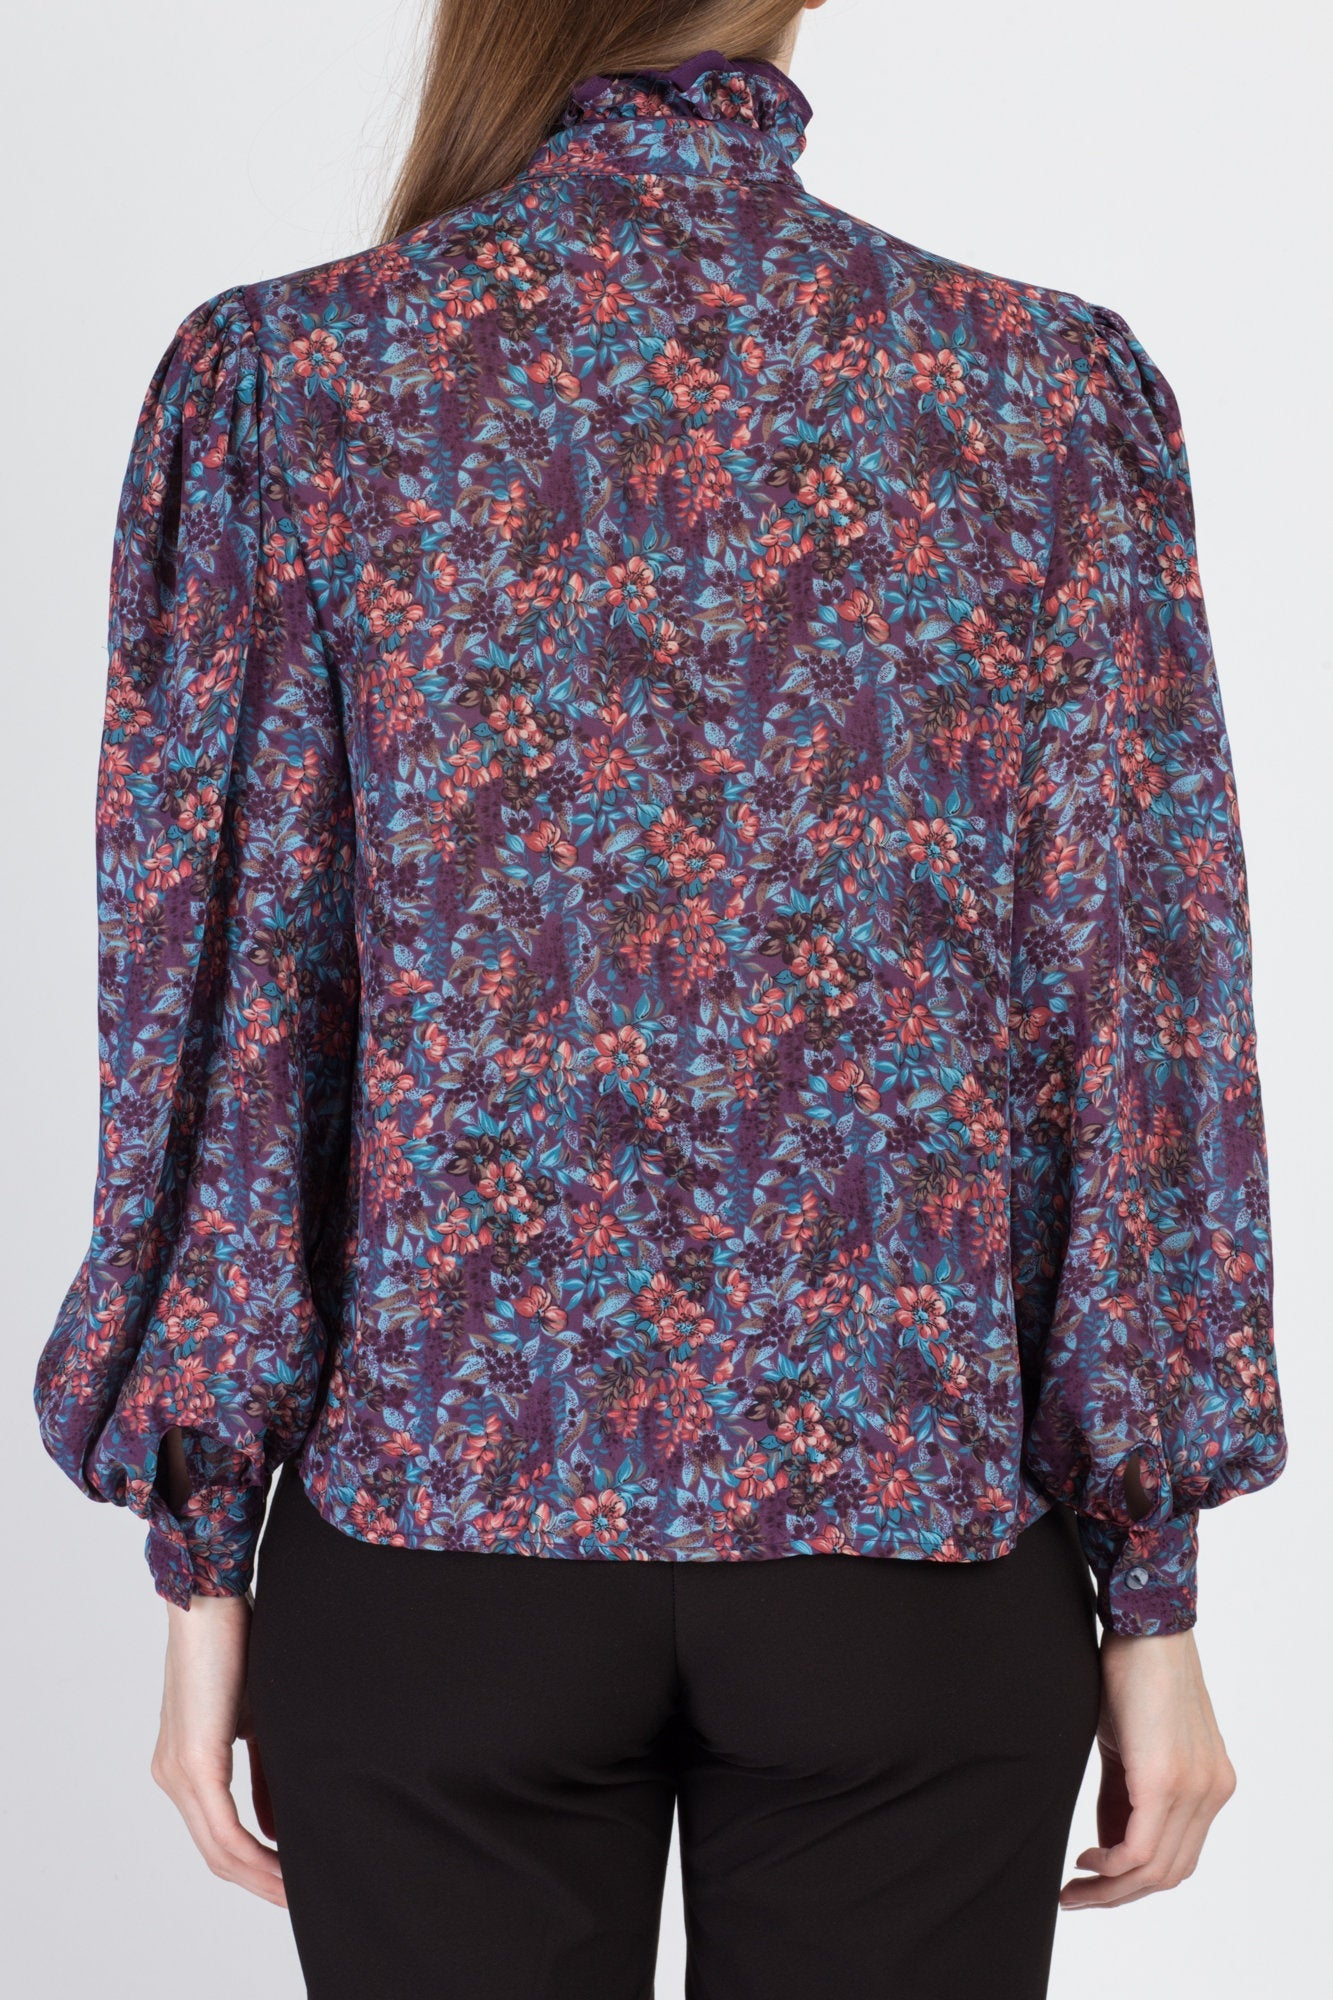 80s Floral Balloon Sleeve Blouse - Medium